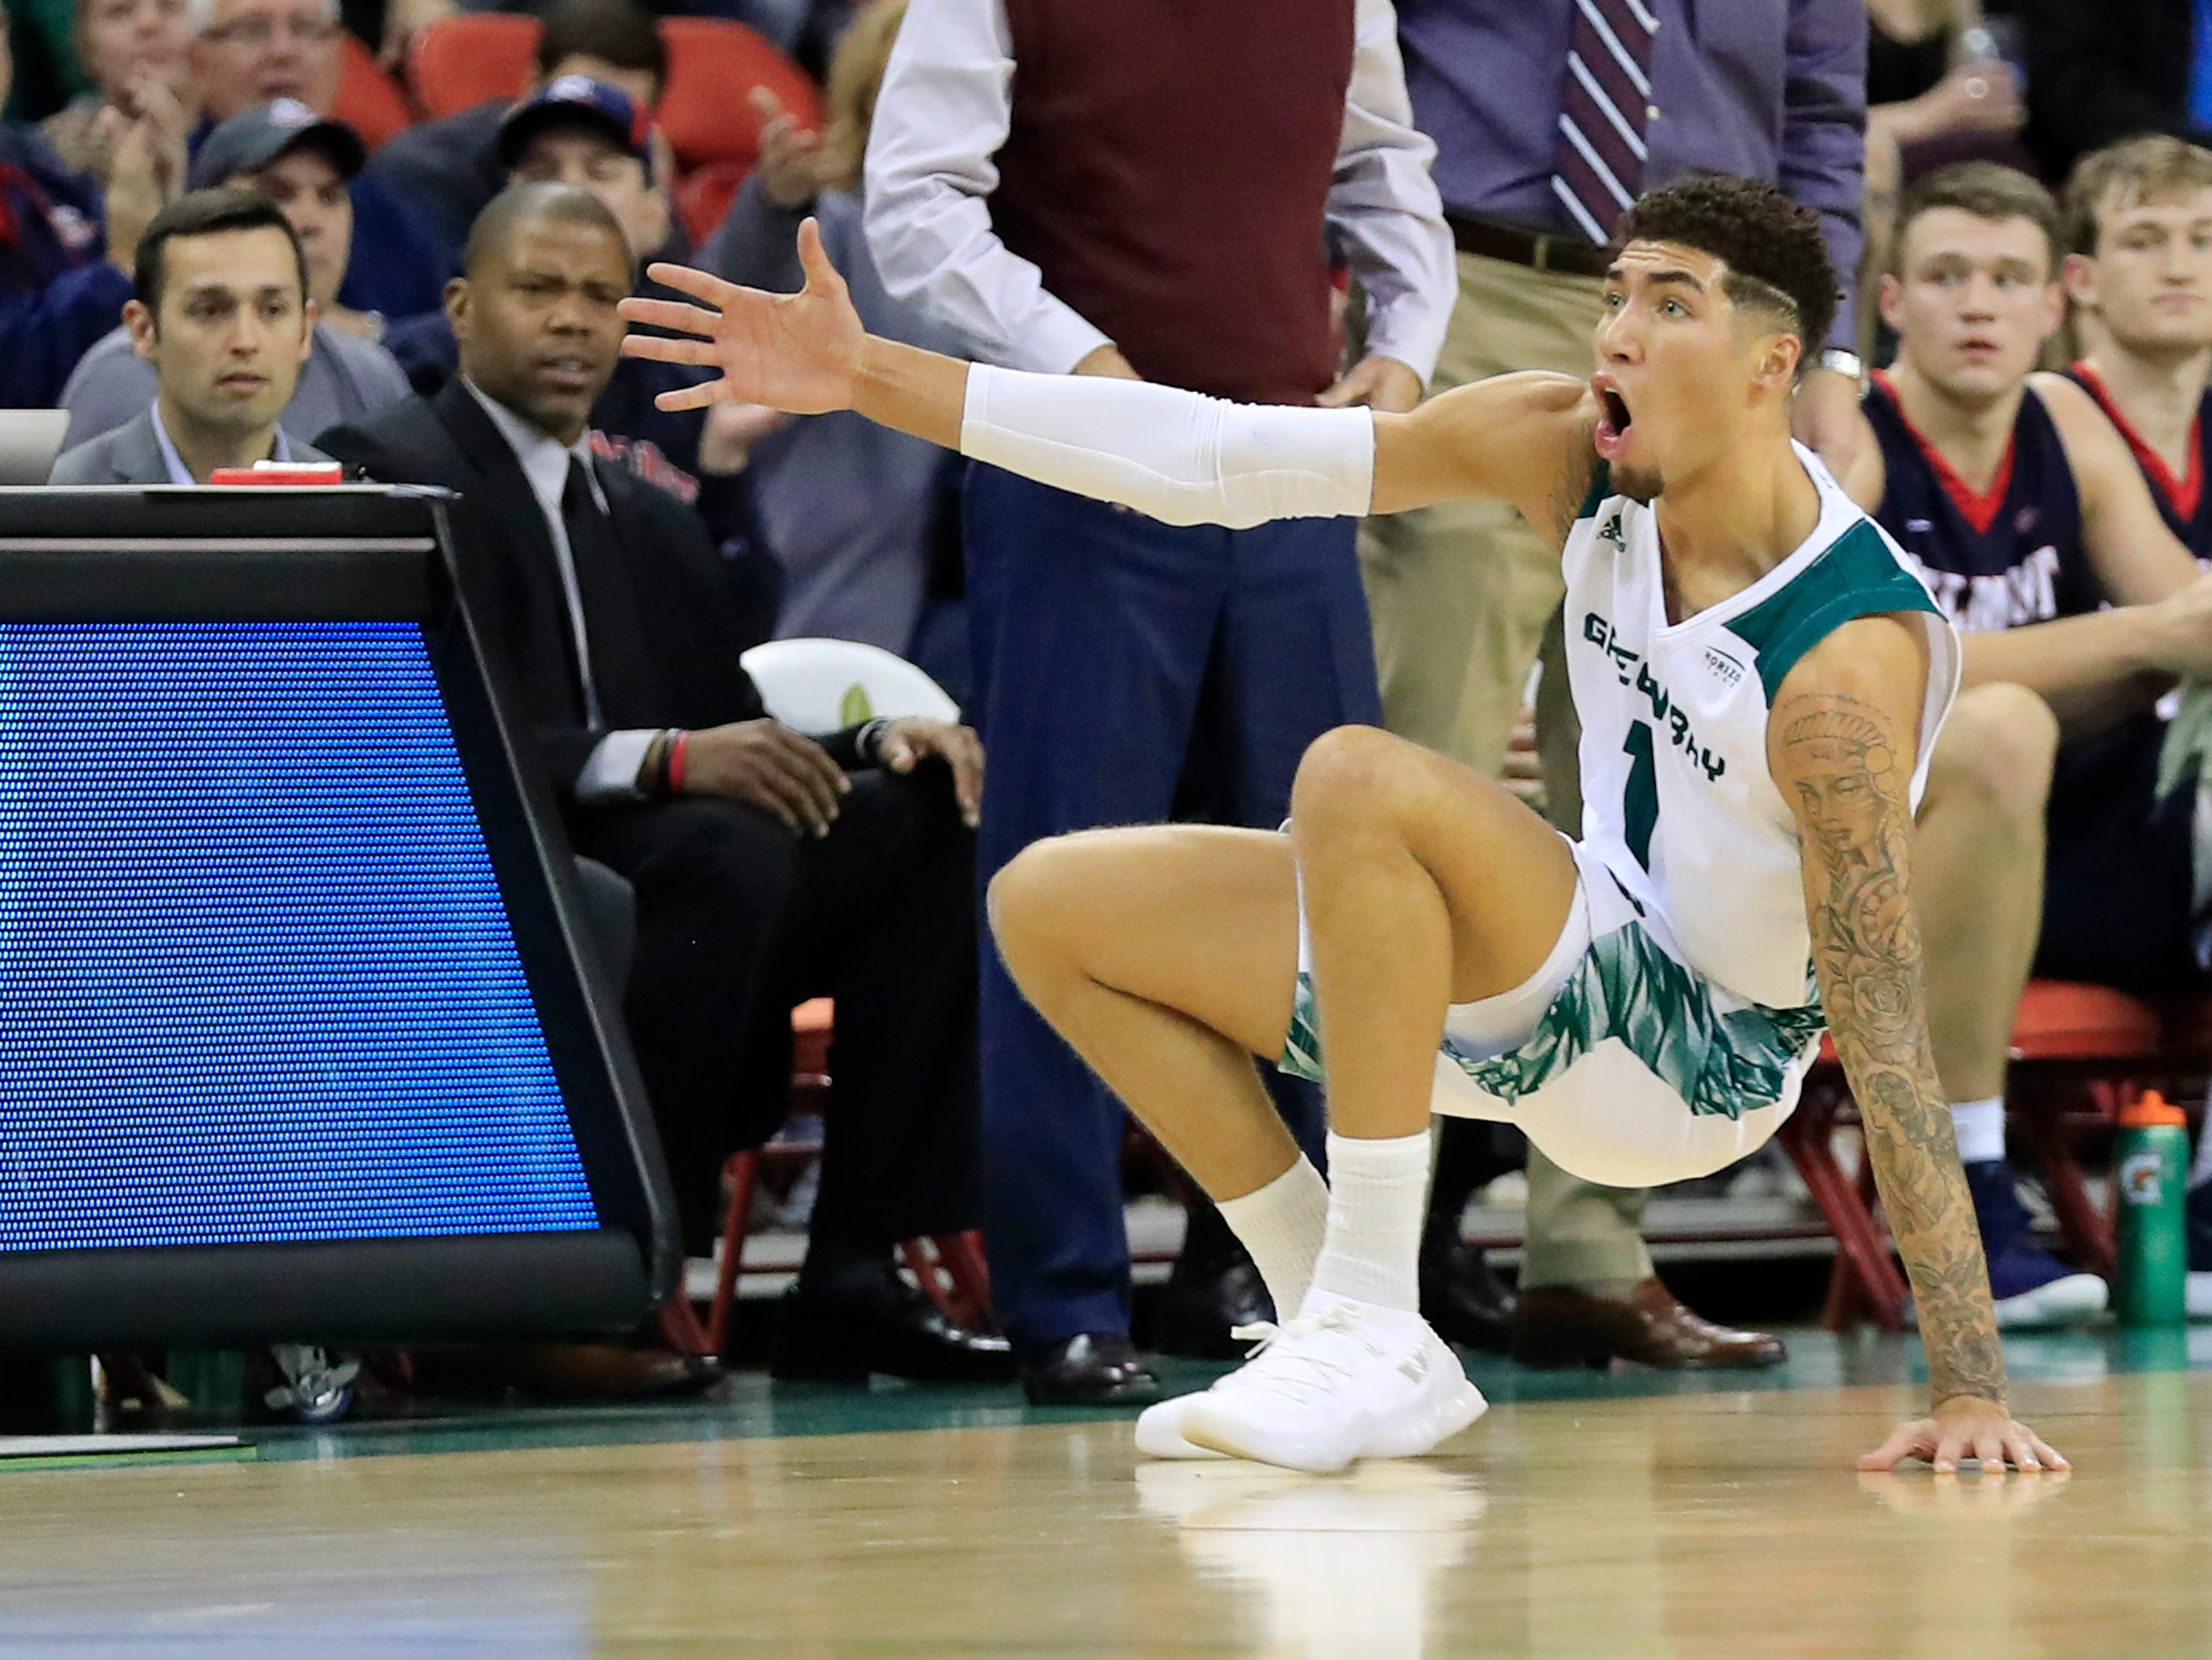 Green Bay Phoenix guard Sandy Cohen III (1) reacts after being called for a foul in a NCAA basketball game against the Belmont Bruins at the Resch Center on Saturday, December 1, 2018 in Ashwaubenon, Wis.